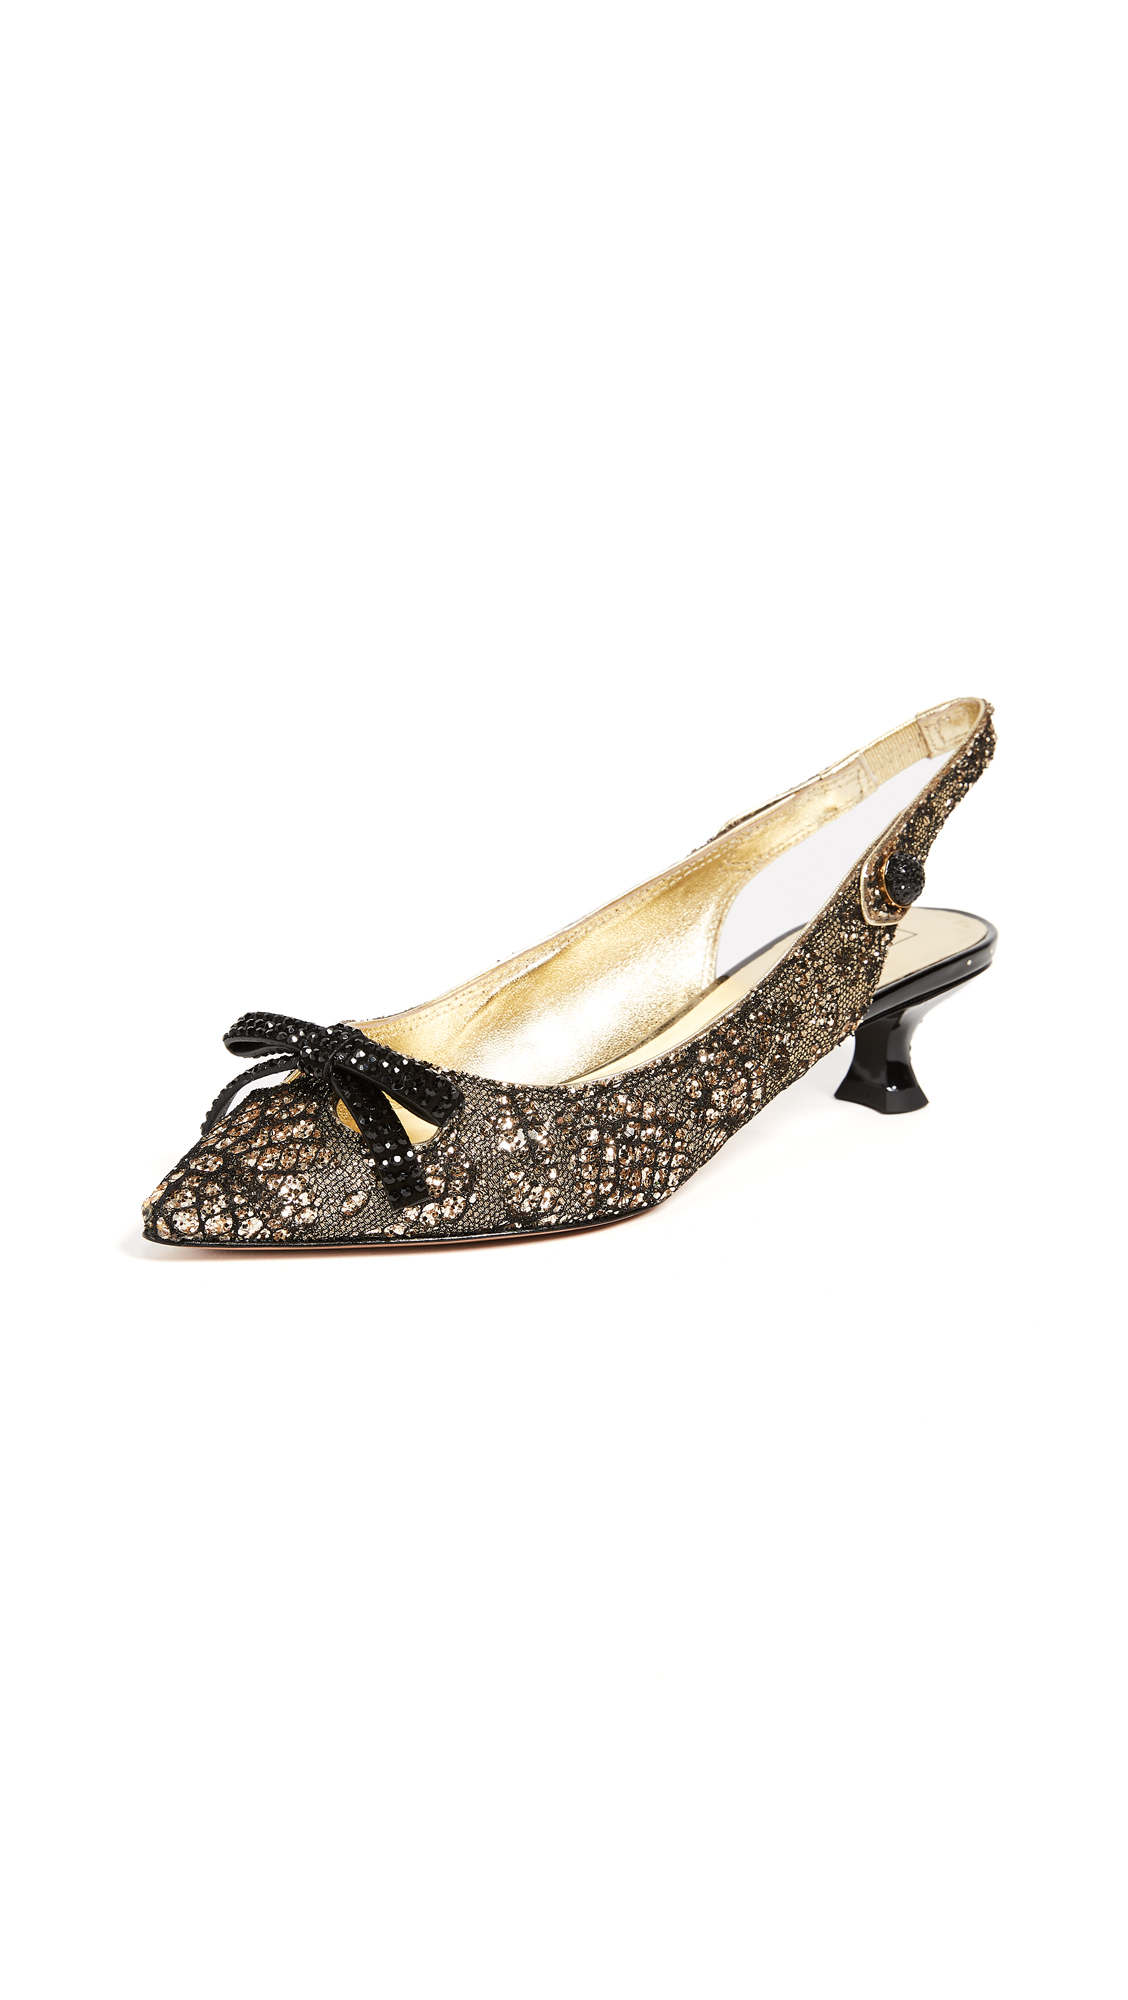 Marc Jacobs Abbey Slingback Pumps - Gold